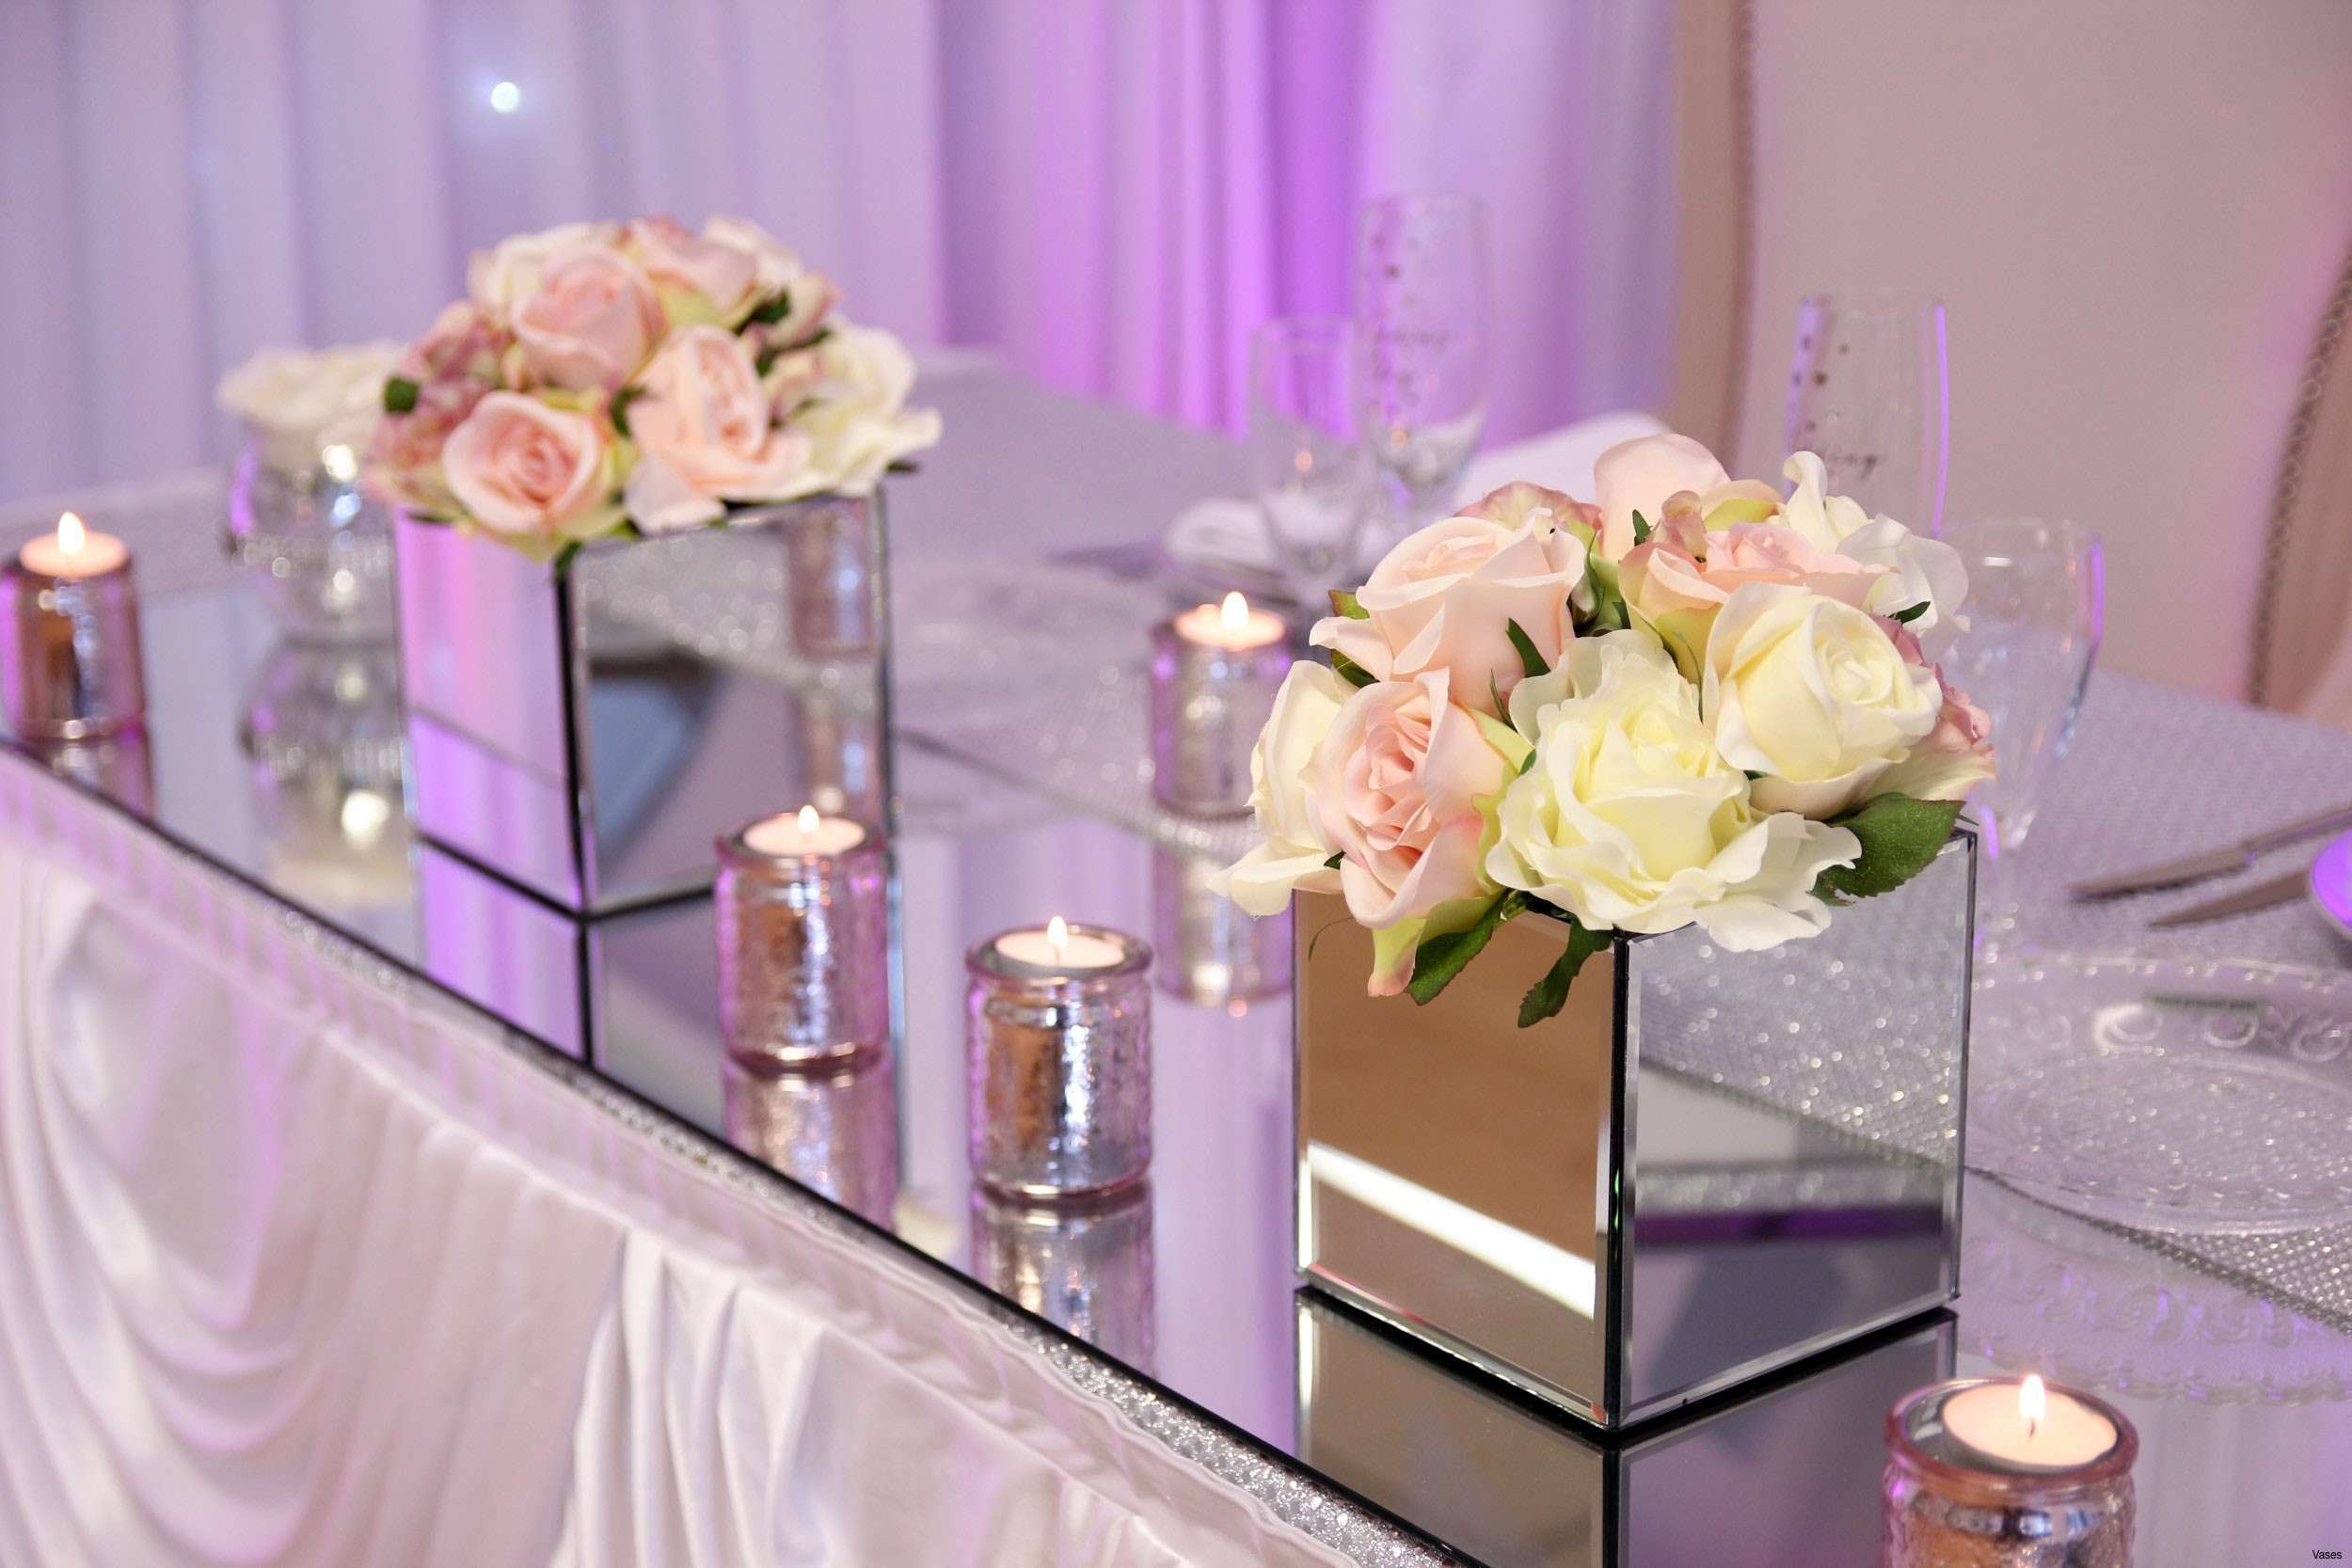 cheap glass flower vases wholesale of sequin tablecloth wholesale the best fancy cheap glass vases for with regard to sequin tablecloth wholesale best of mirrored square vase 3h vases mirror table decorationi 0d weddings